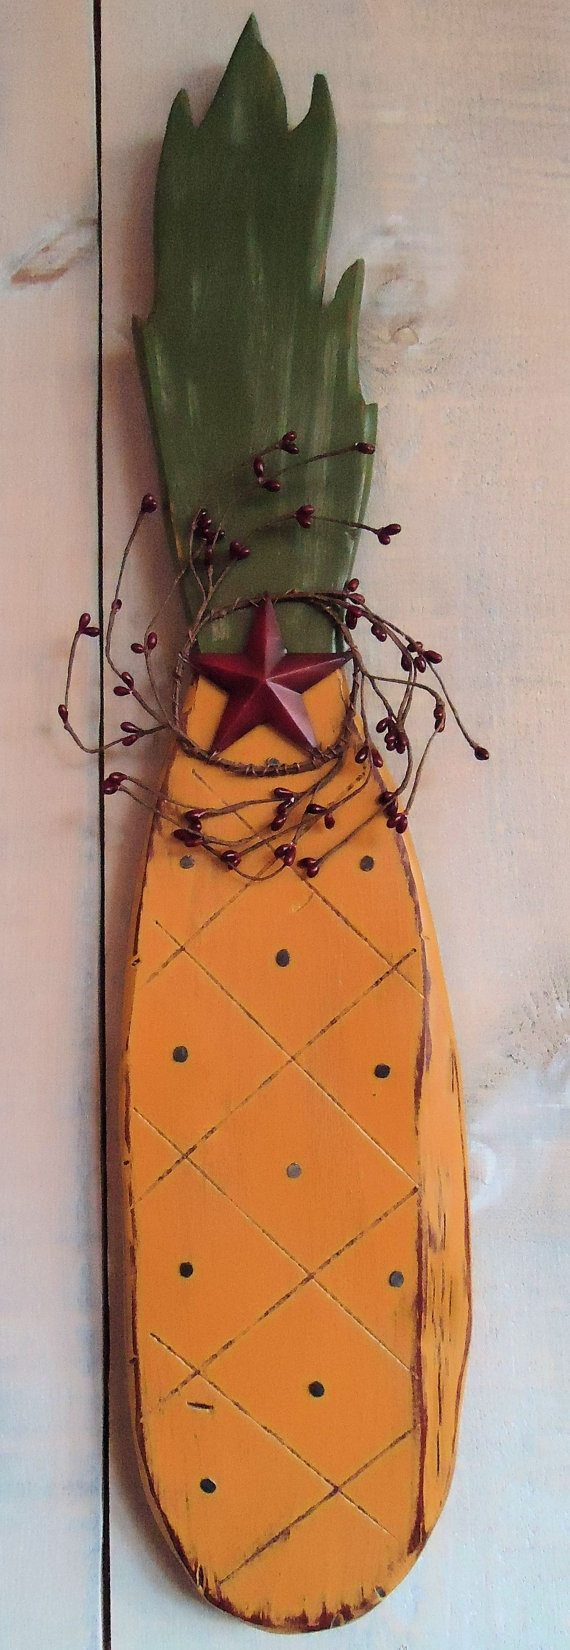 Primitive Pineapple Wall Hanging Handmade by ModerationCorner, $20.00